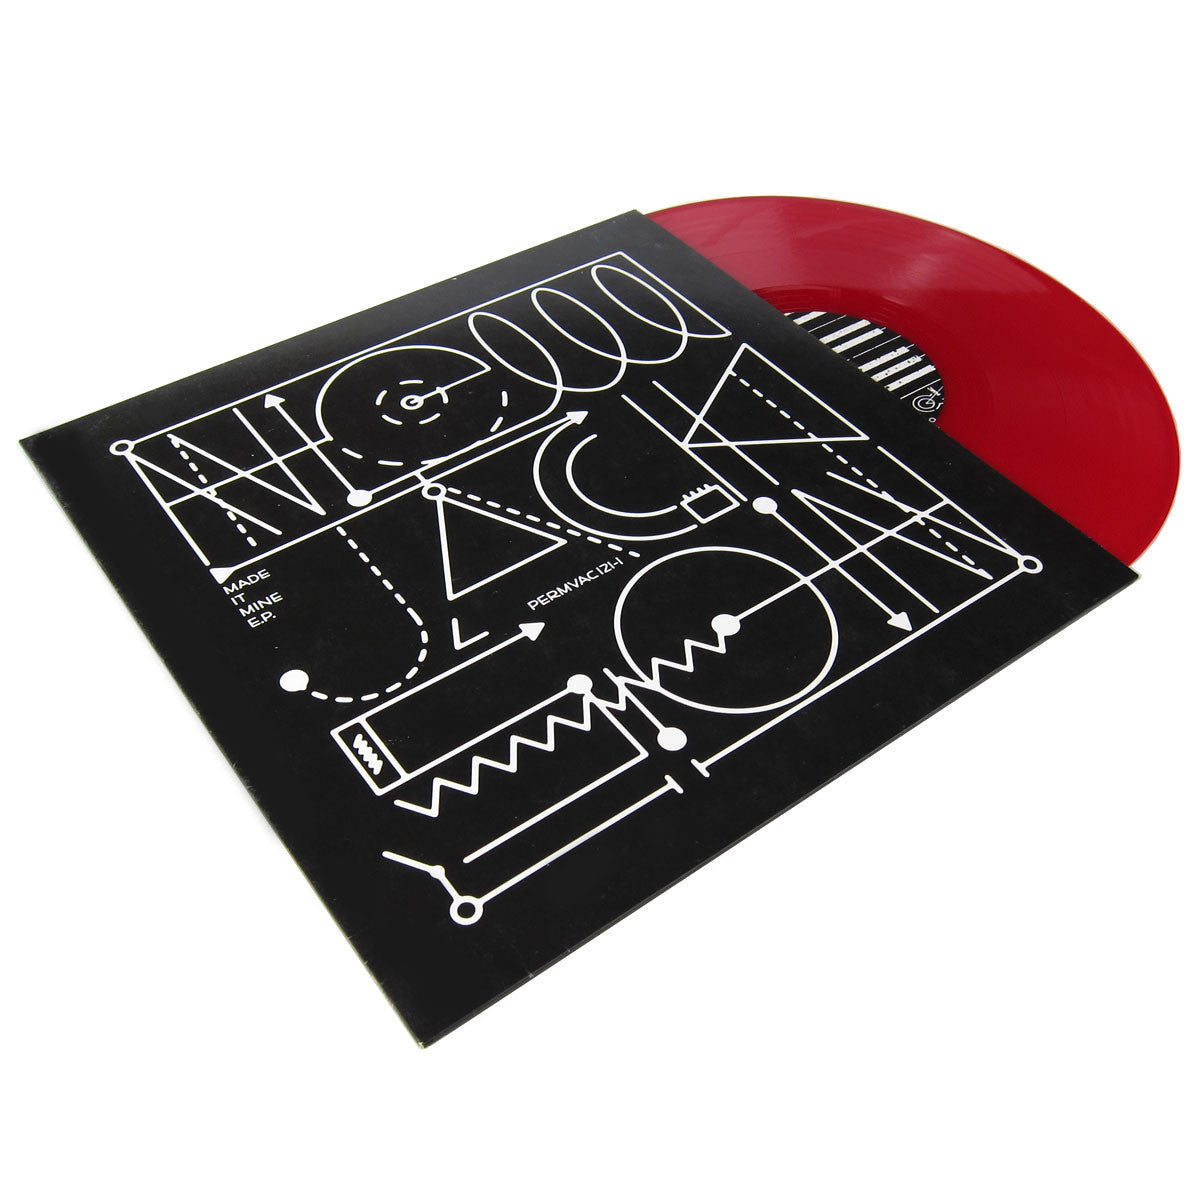 New Jackson: Made It Mine EP Vinyl 12""